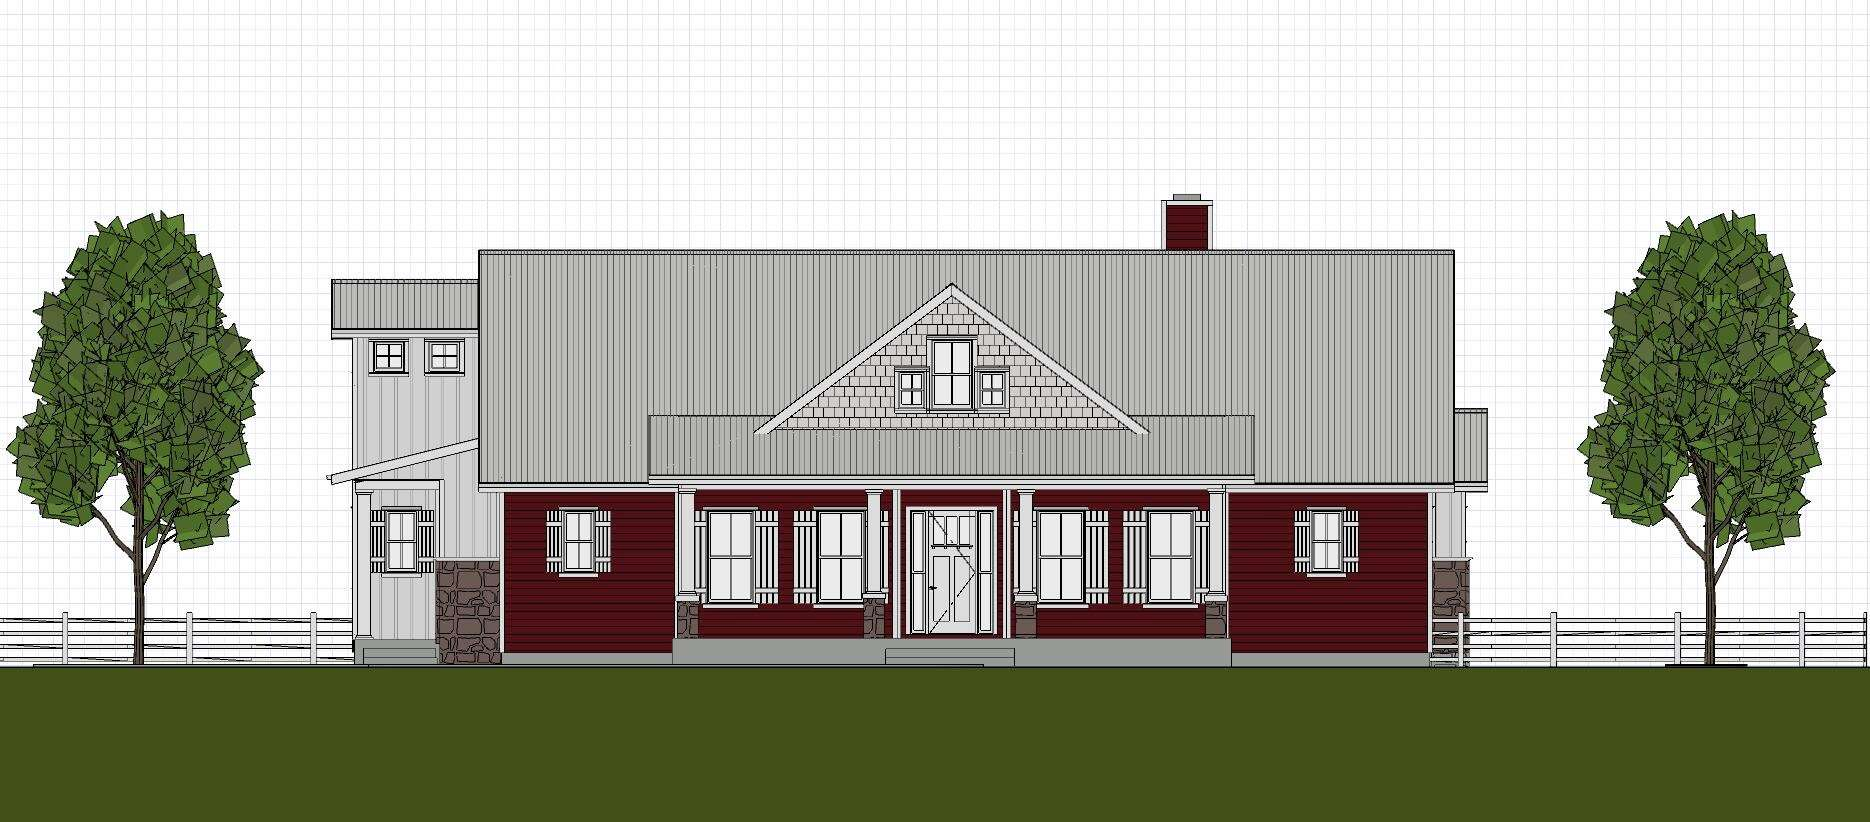 New Construction for Sale at 11940 SE 128 Place Road Ocklawaha, Florida 32179 United States